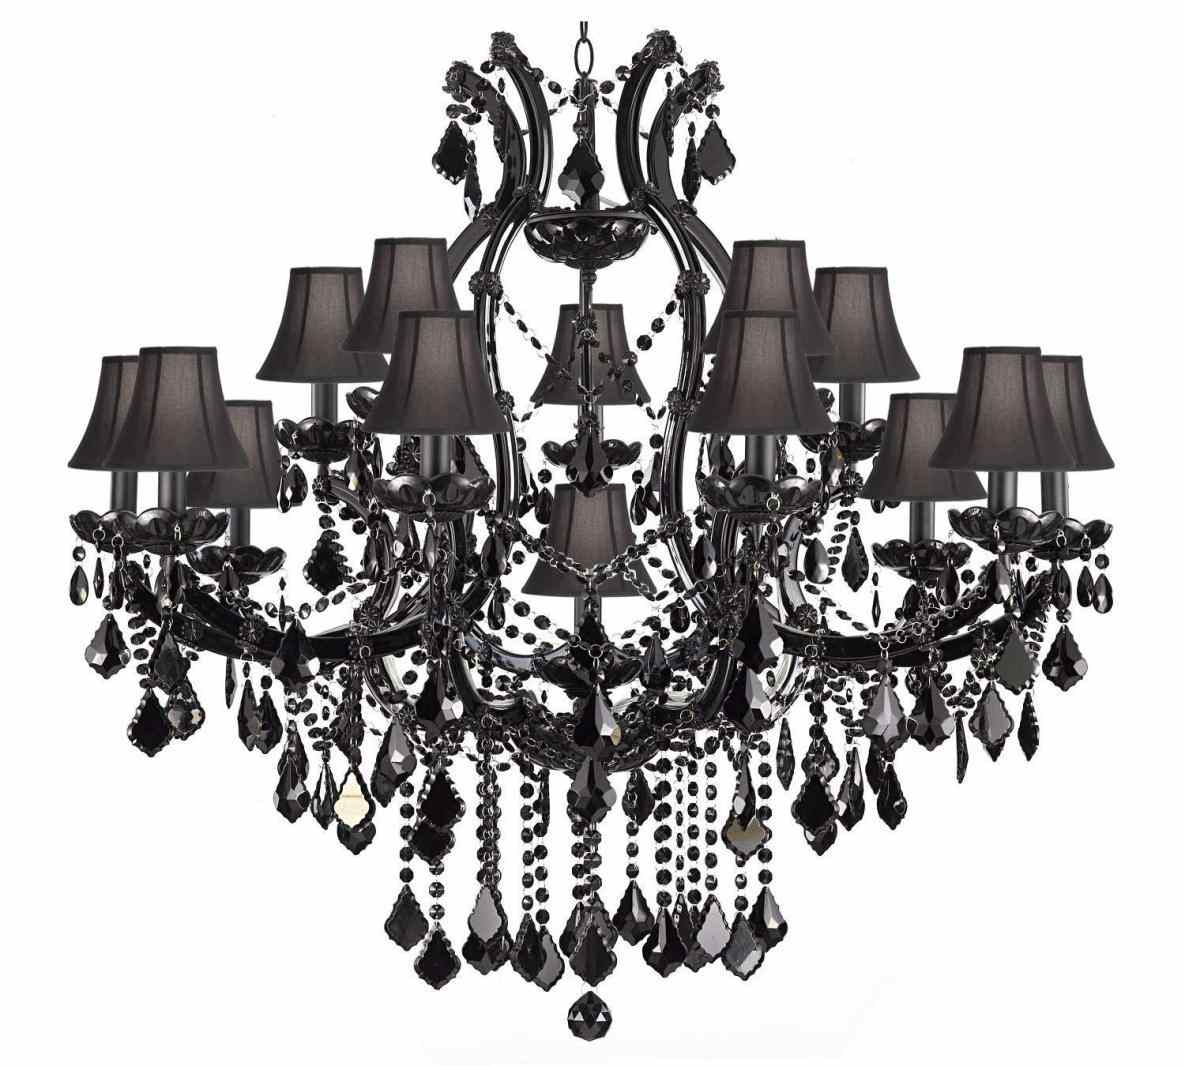 Stylish Wrought Iron Outdoor Lighting | Captivating Gothic Chandelier Idea